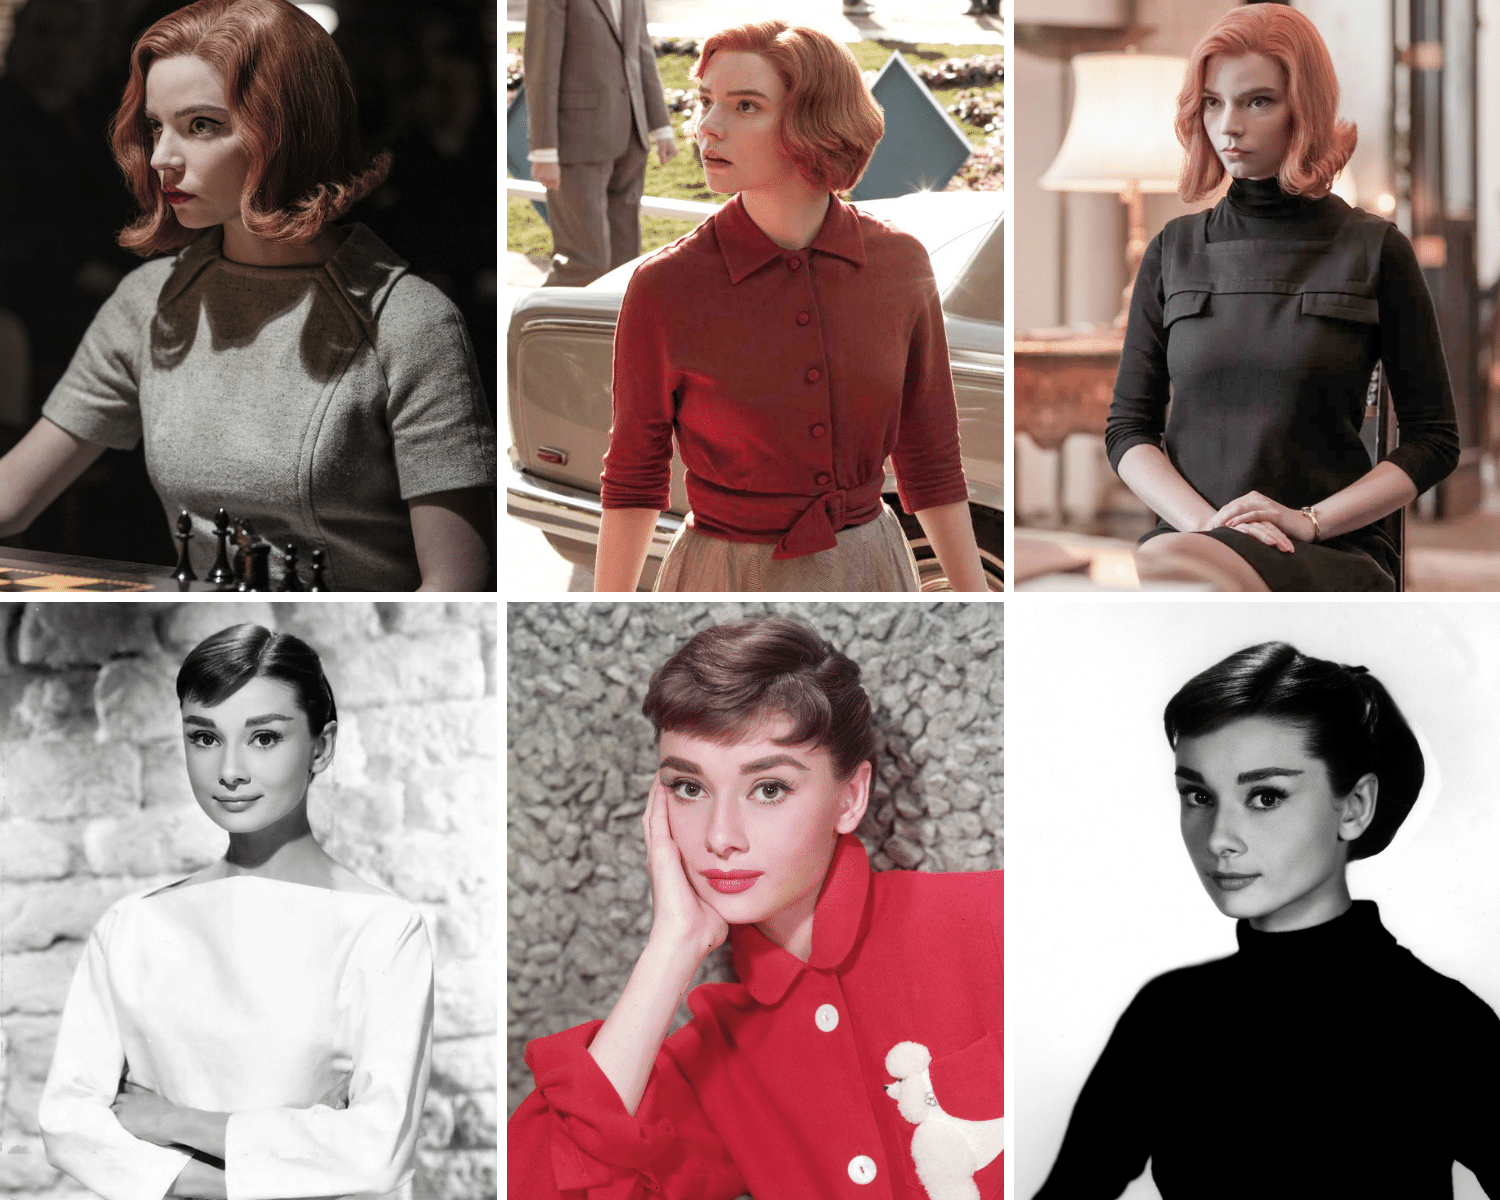 Audrey Hepburn 60's Style | Here's where to buy queens gambit clothes/outfits | Beth Harmon's Most Iconic Outfits | Queen's Gambit Style Guide: How to Wear Beth Harmon's '60s Fashion Outfits in 2021 | Muse Boutique Outlet